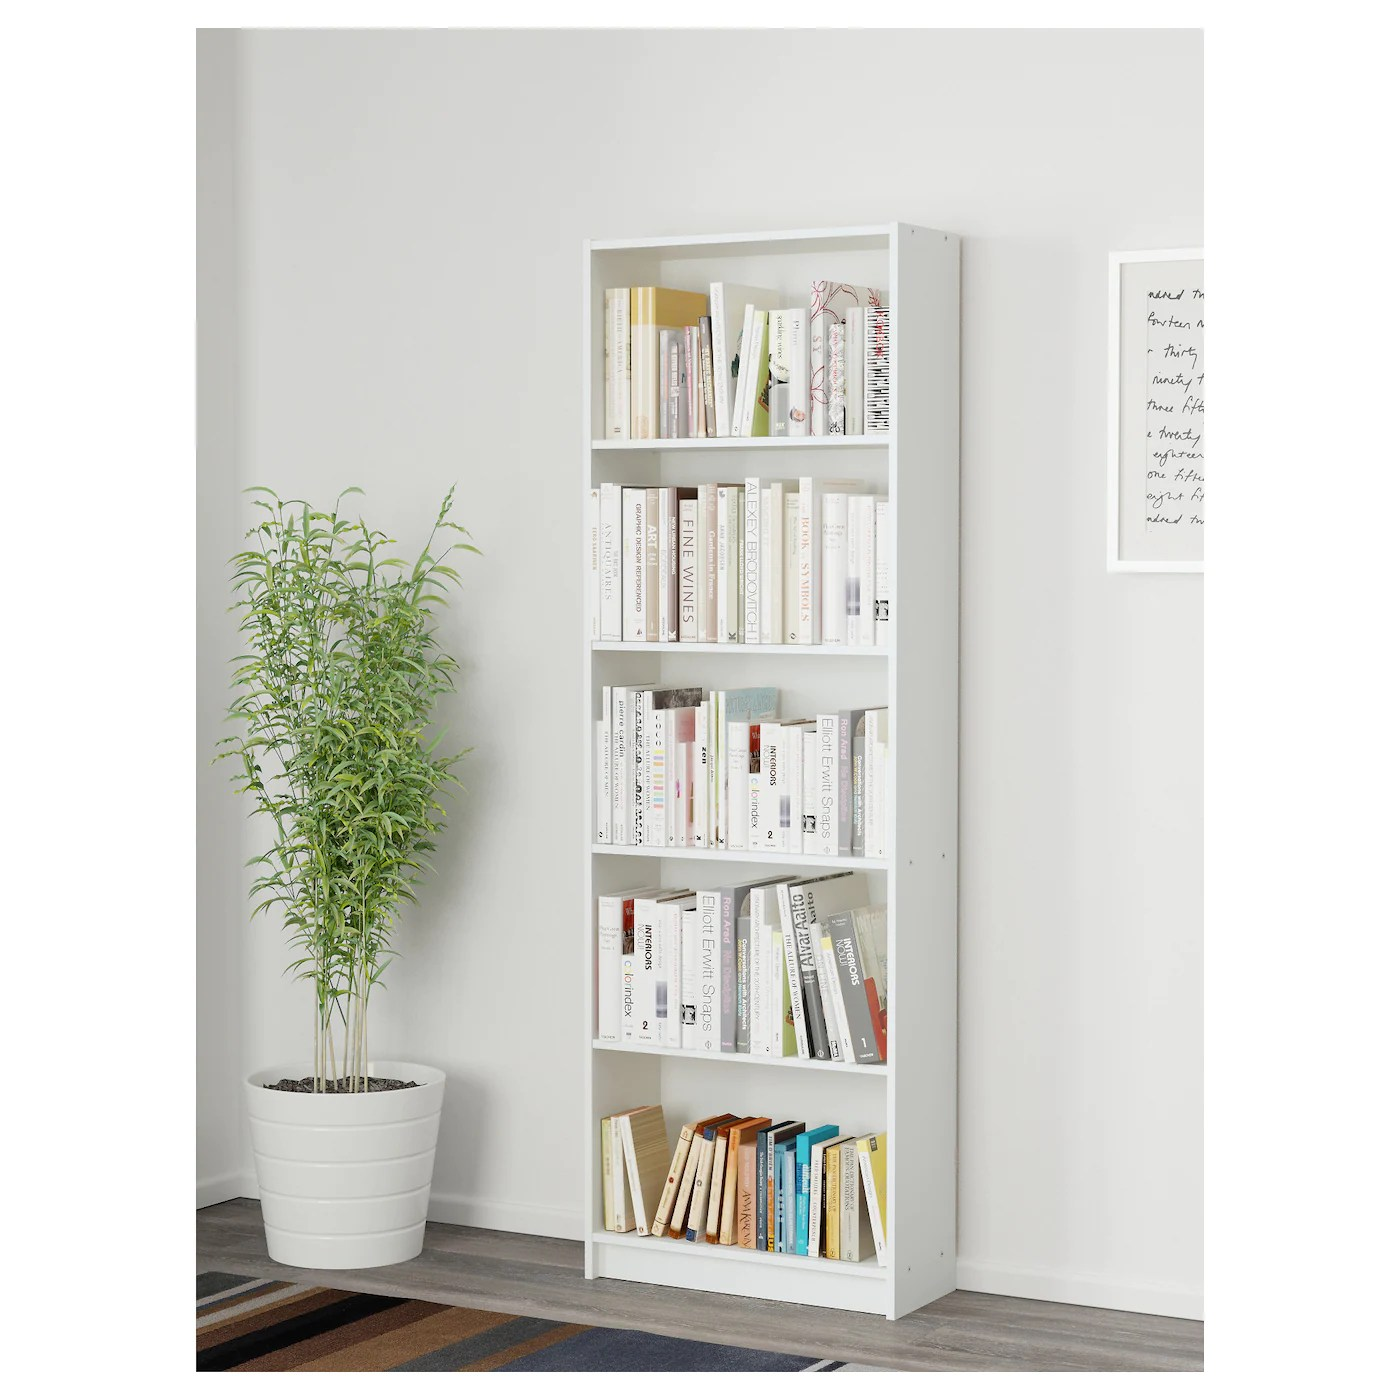 Ikea Mediawand 180 Cm Cool Ikea Gersby Bookcase With 180 Cm Stunning Memes Big